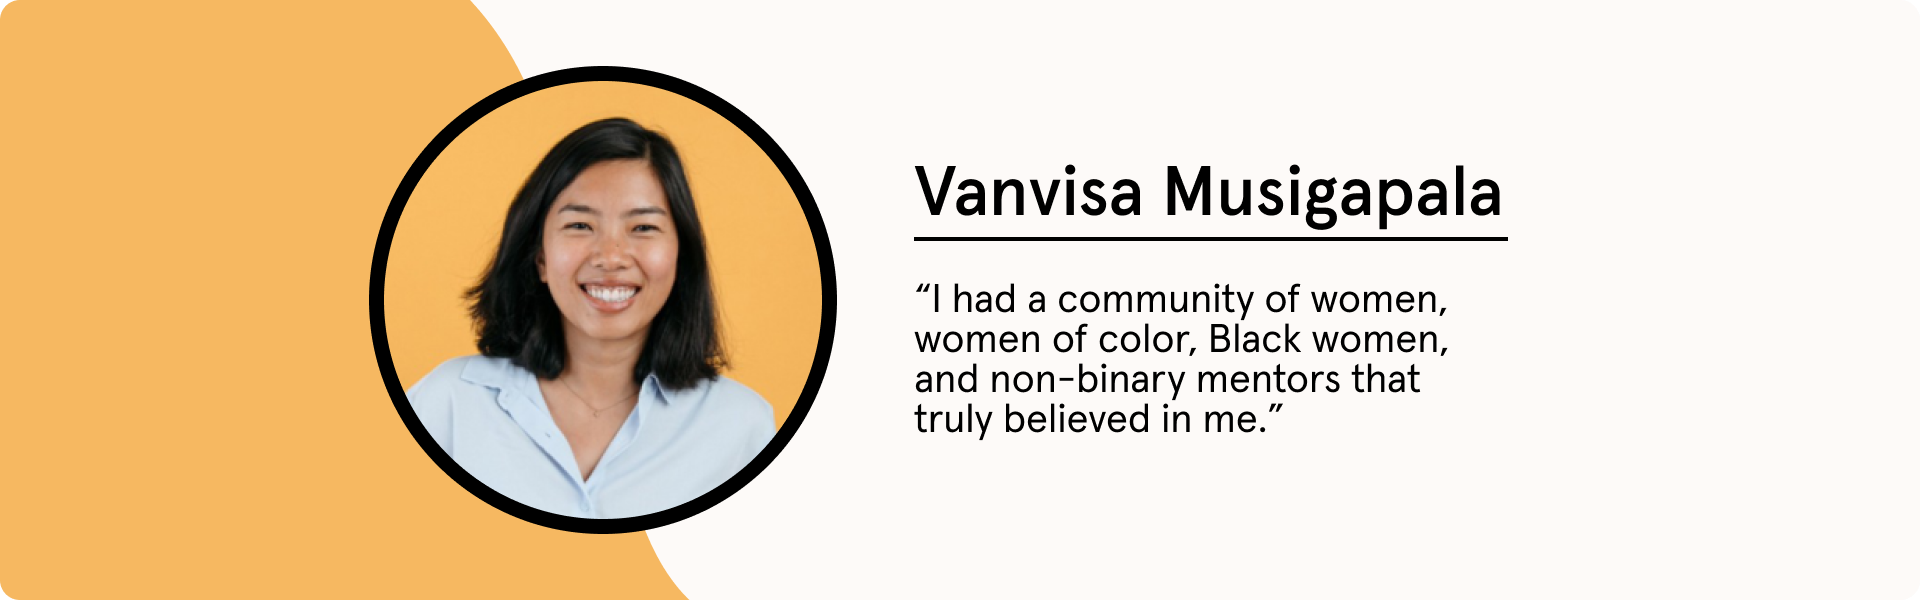 """Vanvisa Musigapala says """"I had a community of women, women of color, Black women, and non-binary mentors that truly believed in me"""""""